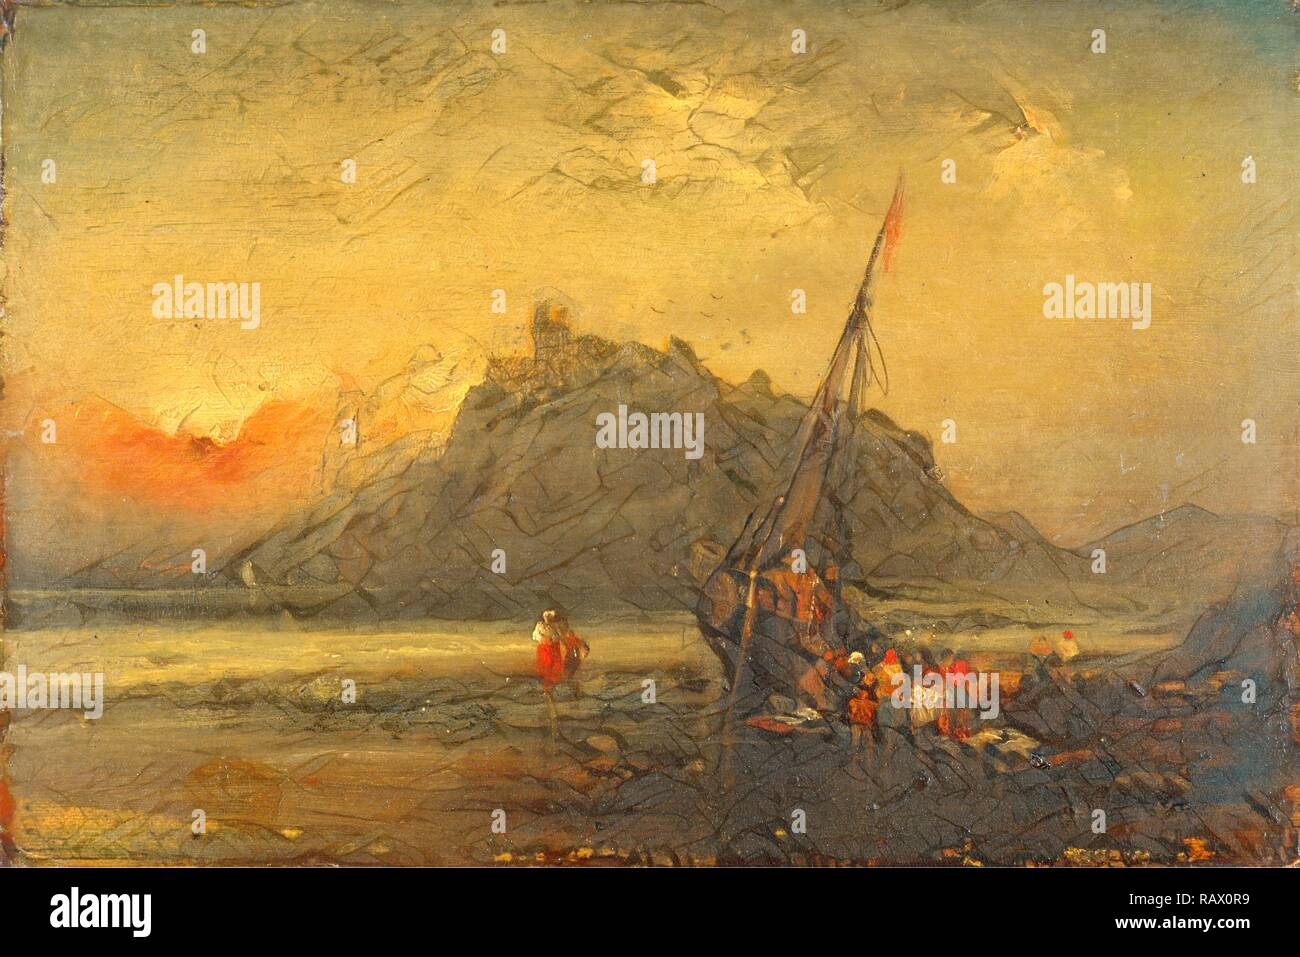 Beach Scene, Attributed to John Sell Cotman, 1782-1842, British. Reimagined by Gibon. Classic art with a modern twist reimagined - Stock Image